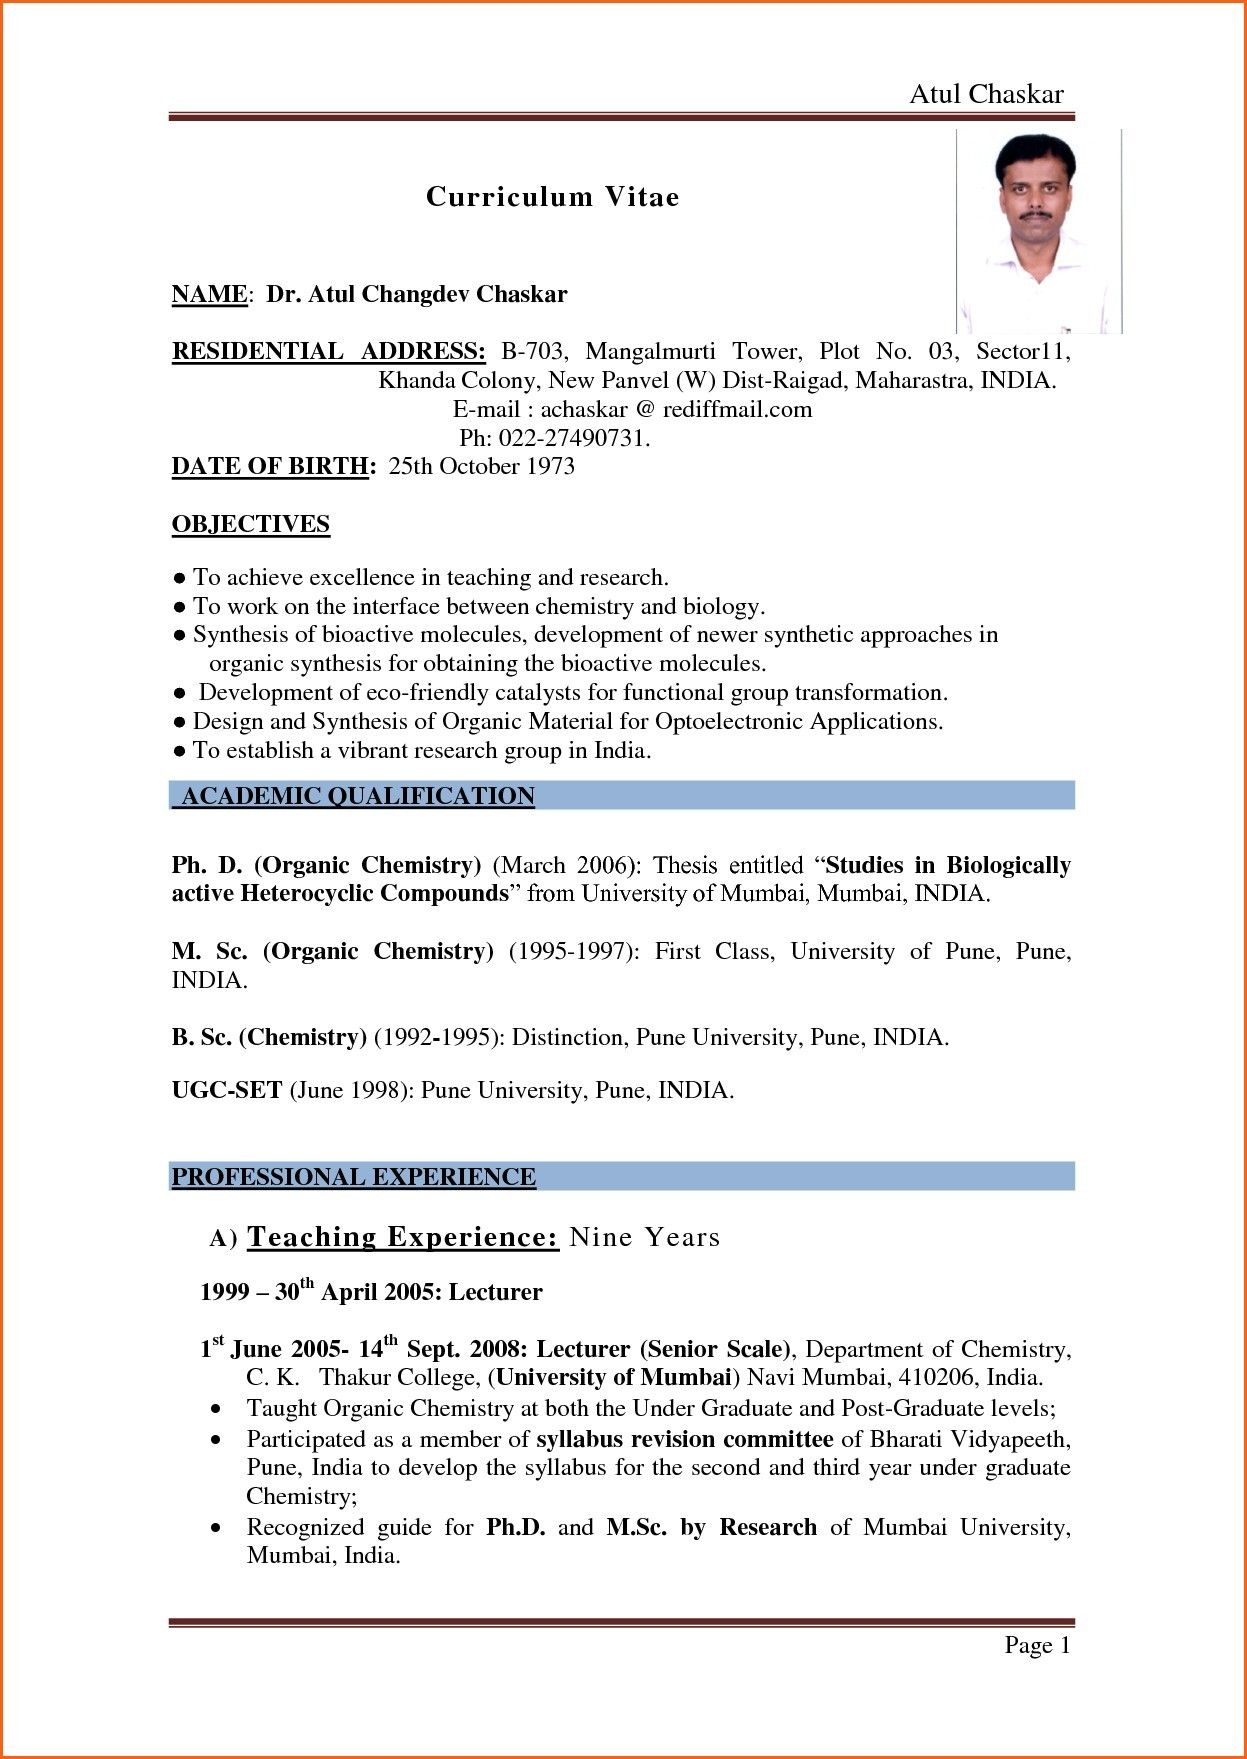 sample resume for teachers with experience in india